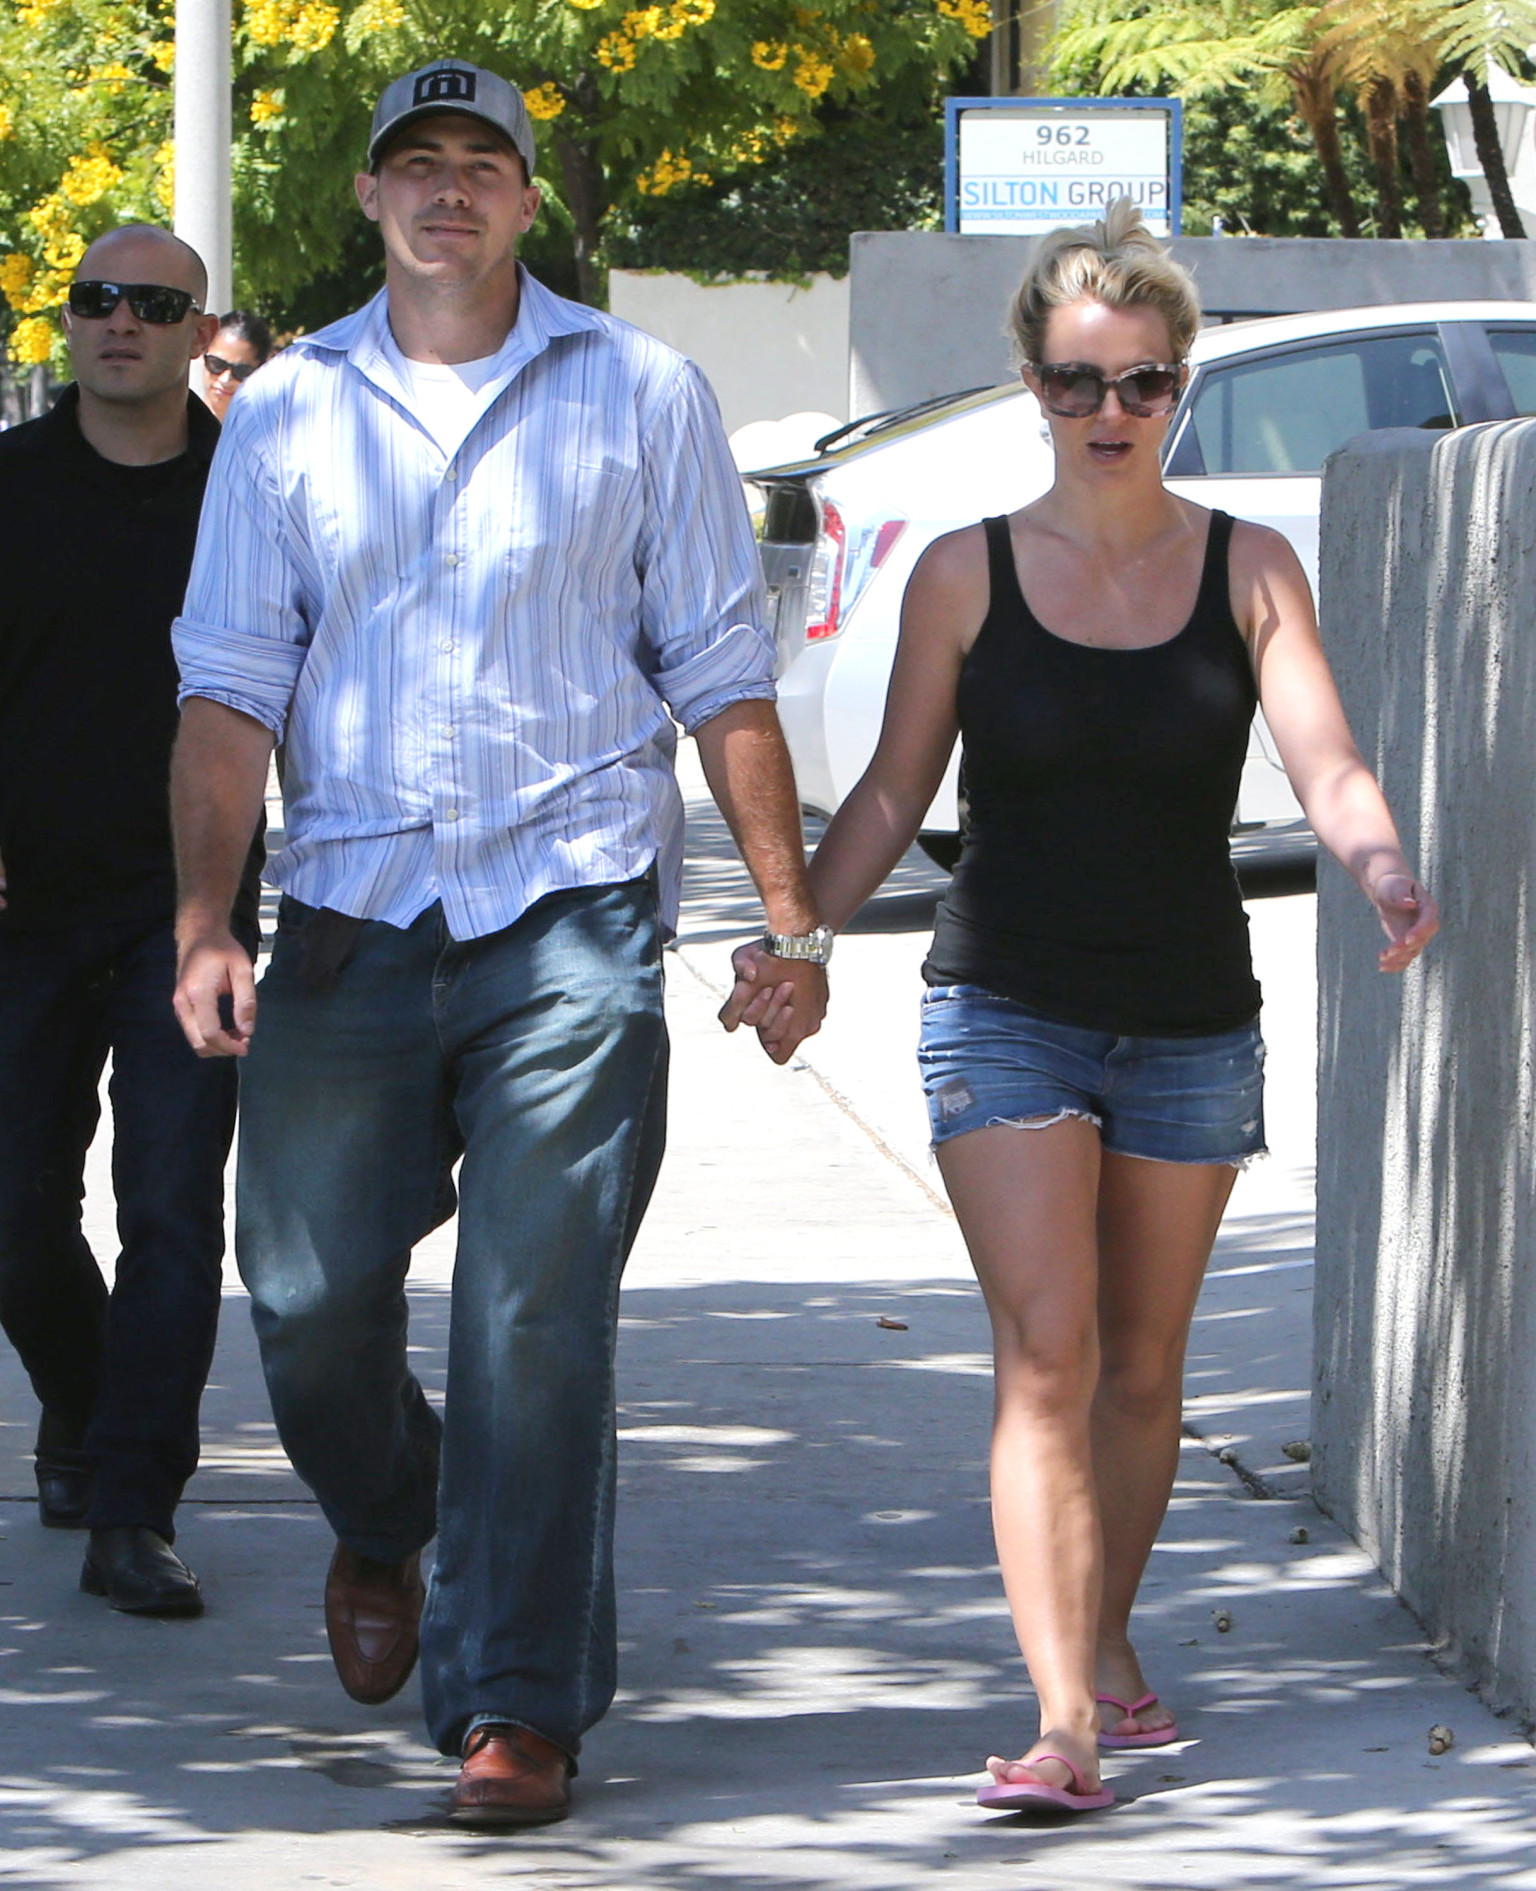 Who is britney spears dating now